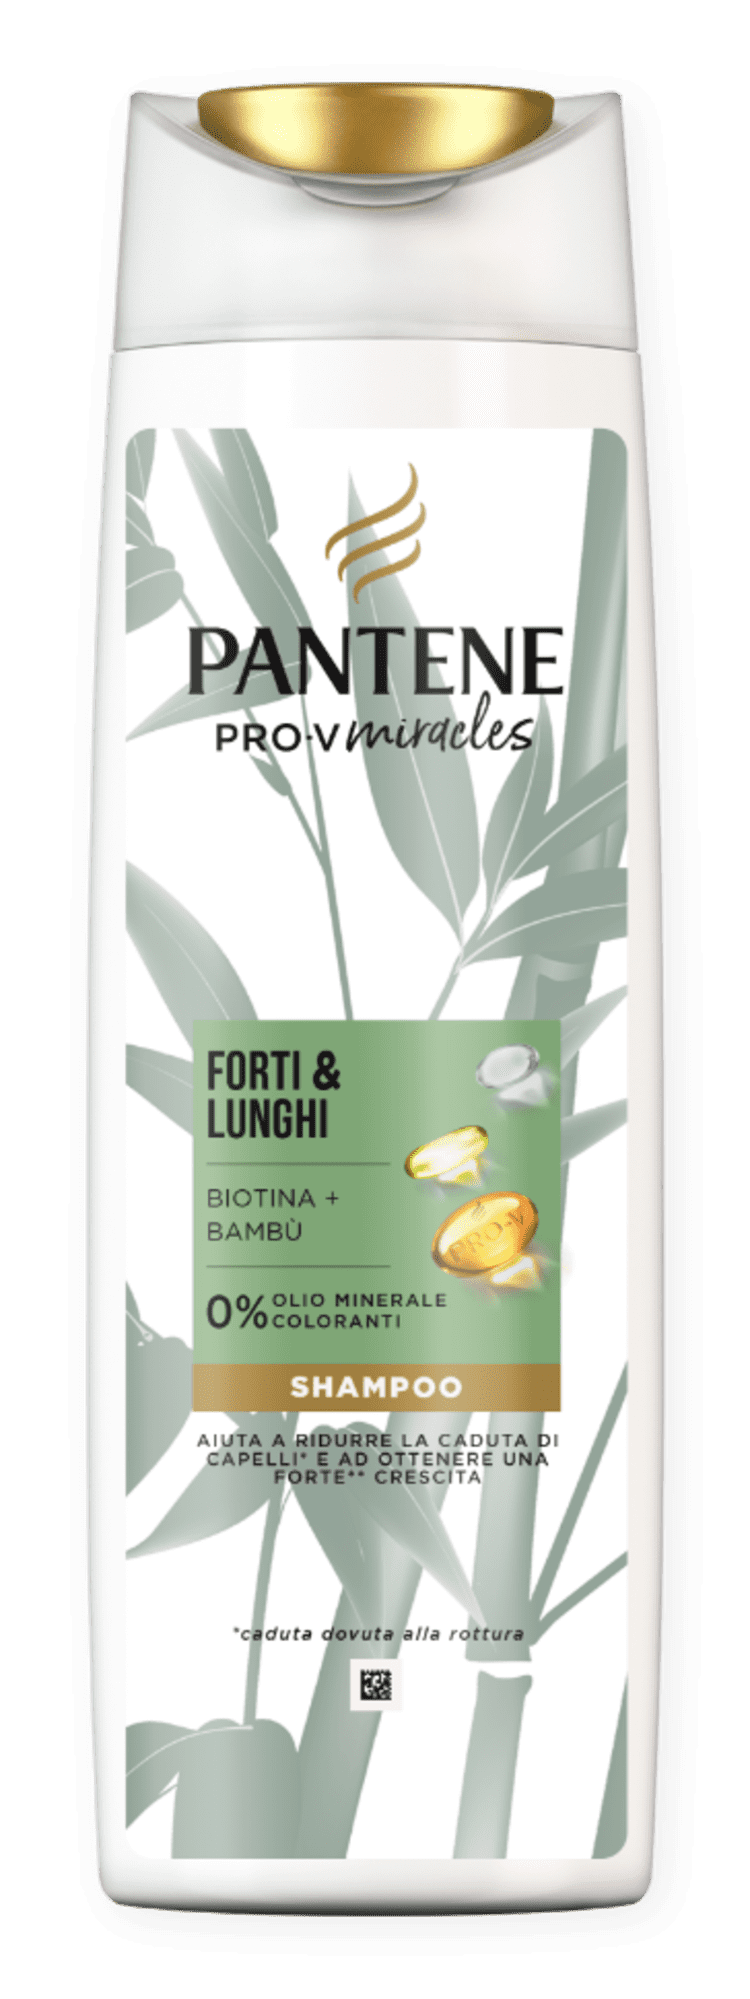 Pantene Pro-V Miracles Shampoo Forti&Lunghi